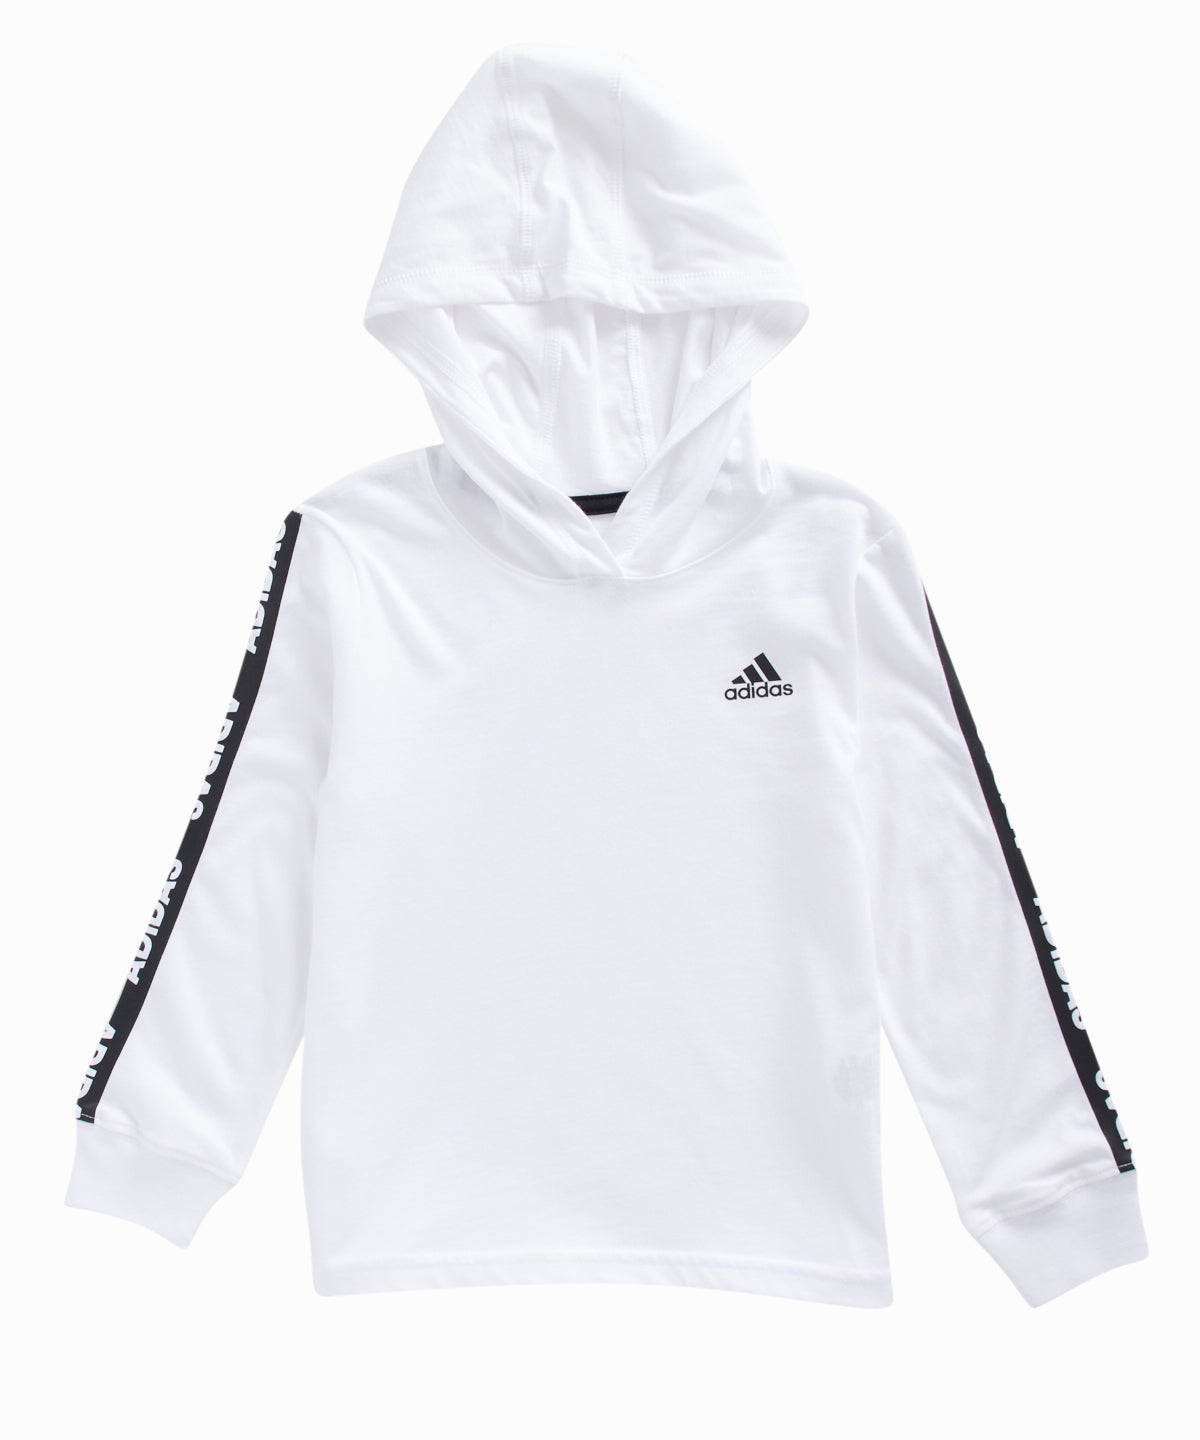 Branded Sleeve Hooded White Tee